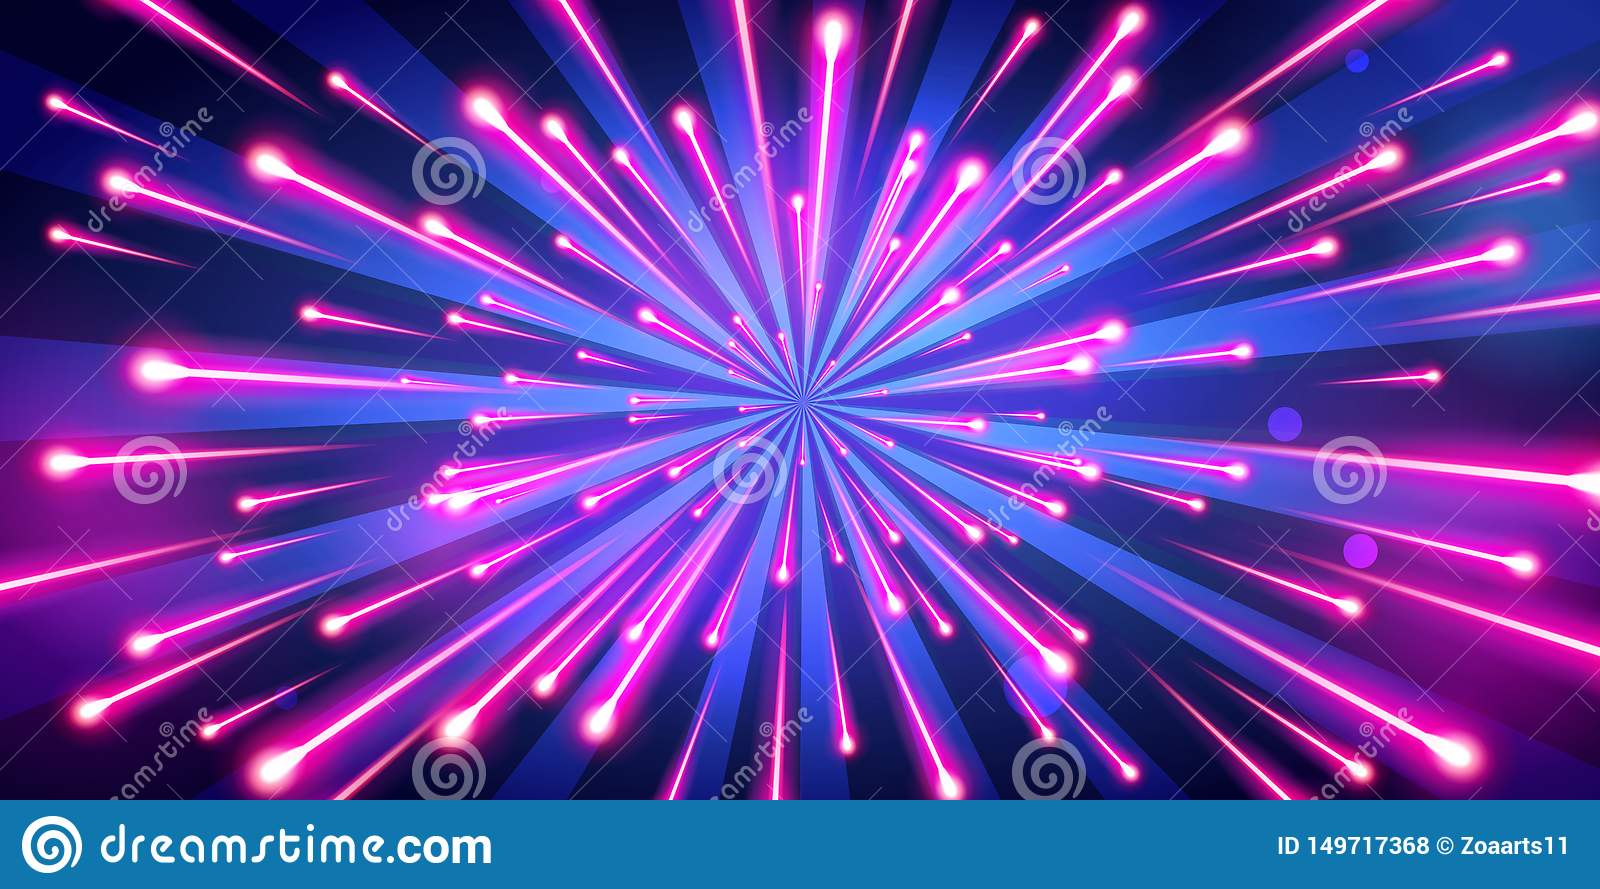 Vector Illustration Abstract Neon Color Big Bang Fireworks Galaxy Background Speed Of Light Stock Vector Illustration Of Celebration Digital 149717368